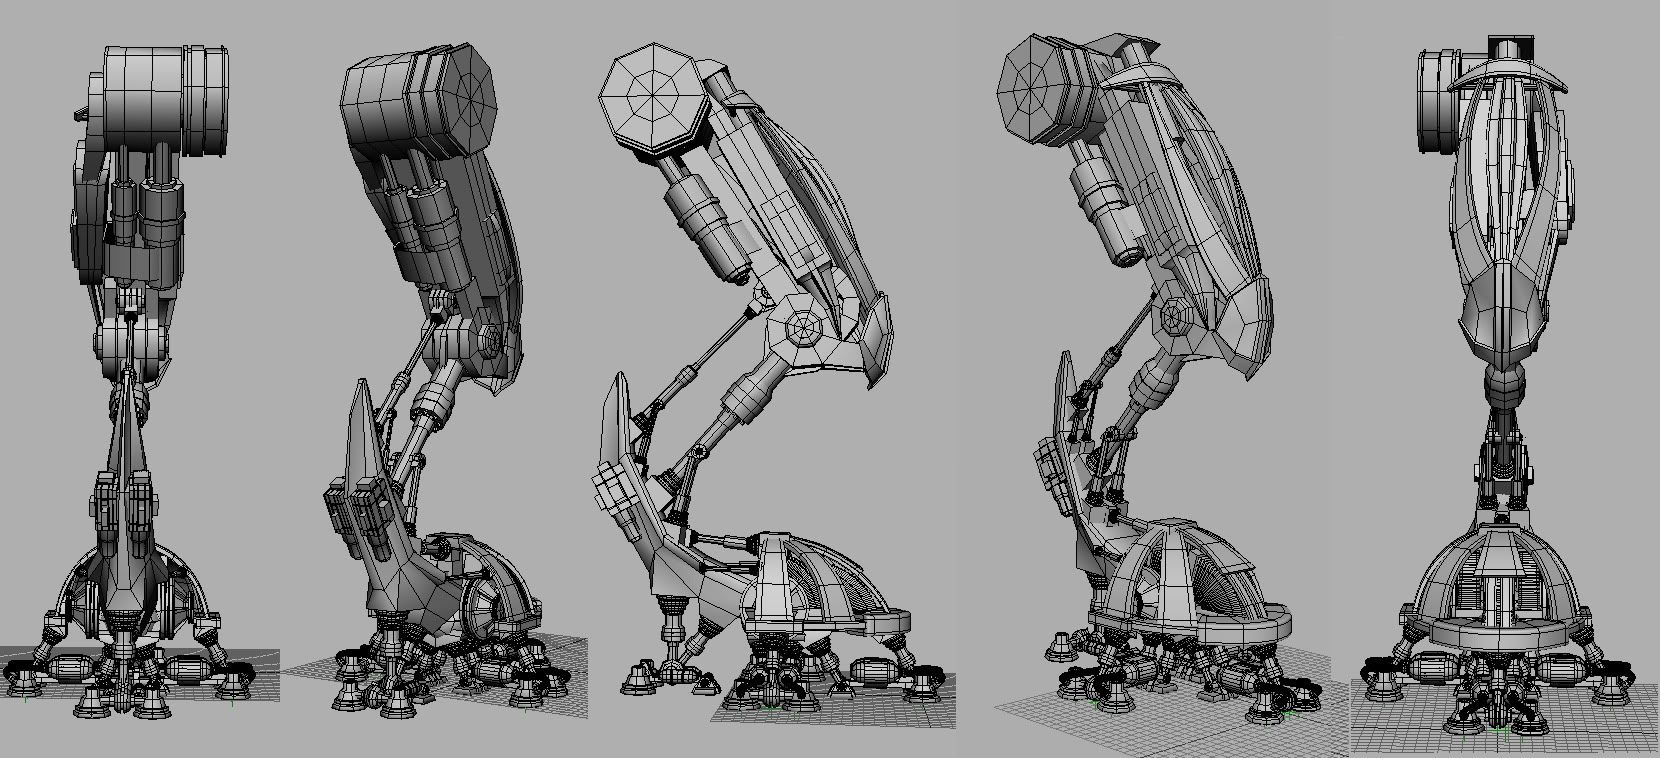 MASTA-KILLA TERRITORIES: MECHA LEG MECHANISM AND CONCEPTS